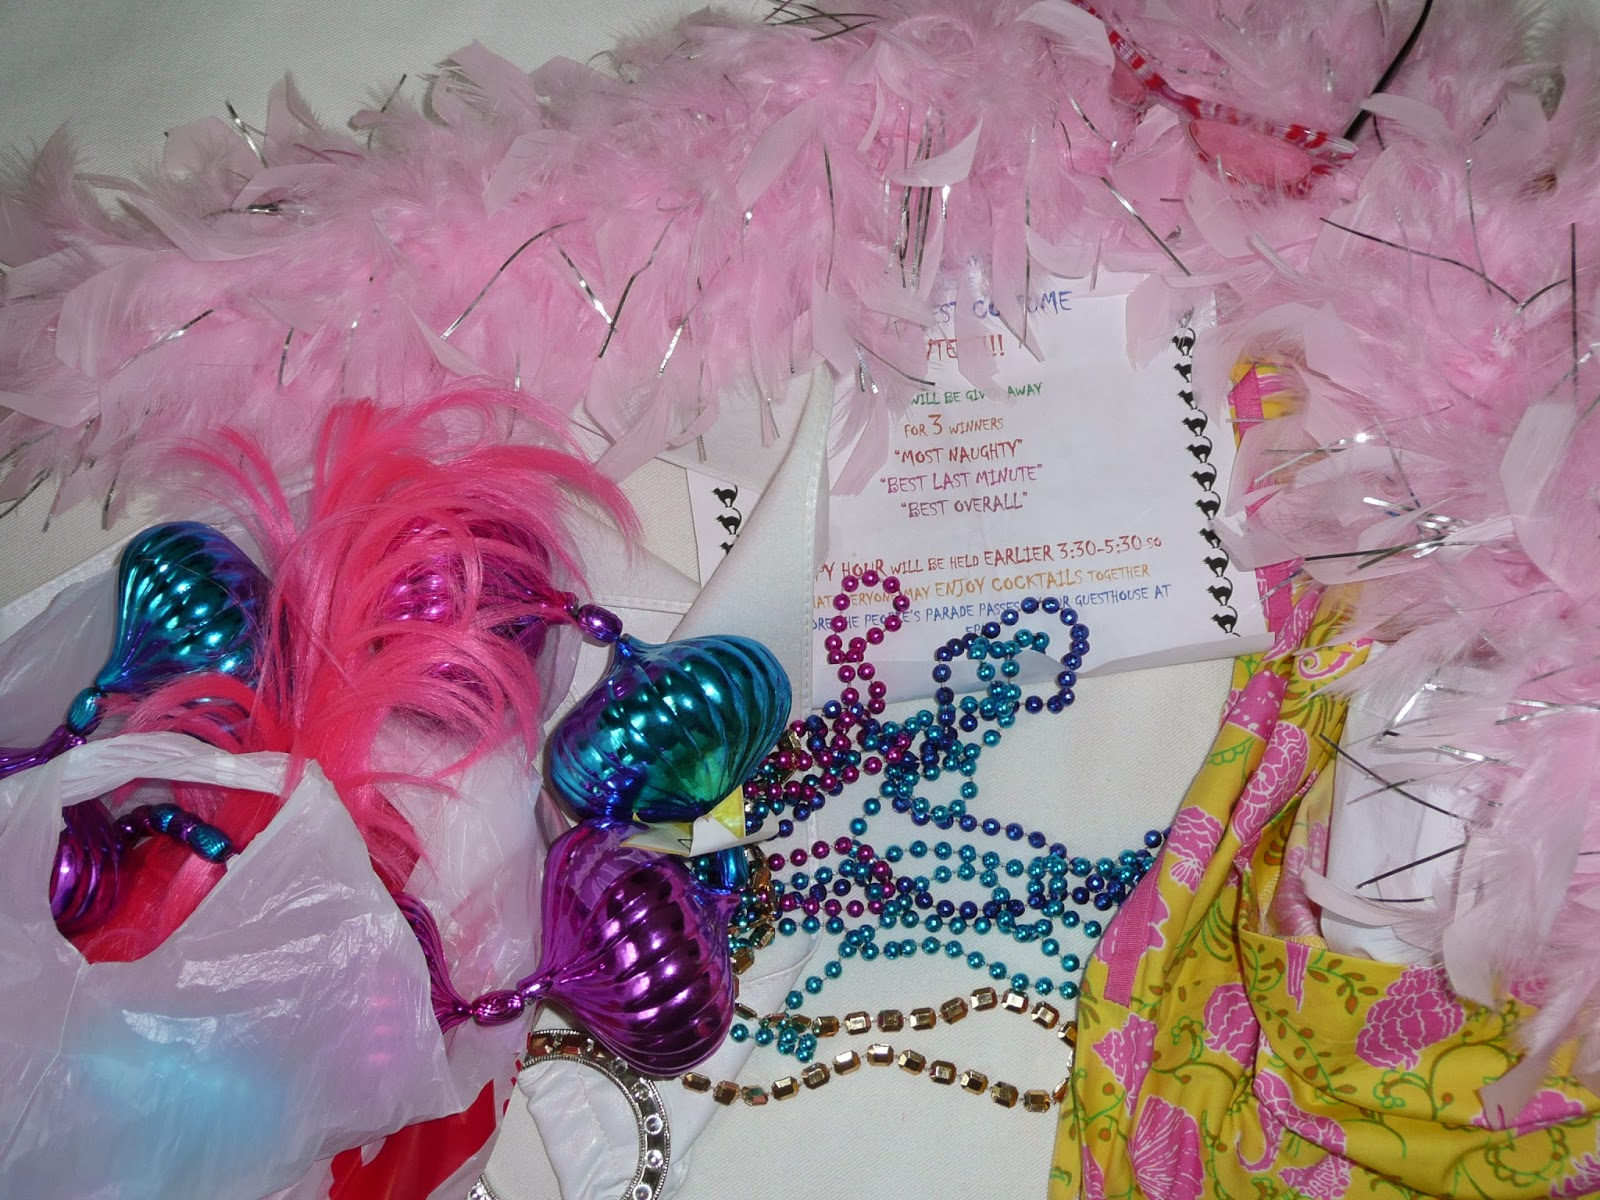 Fantasy Fest Key West - beads, baubles and fancy dress